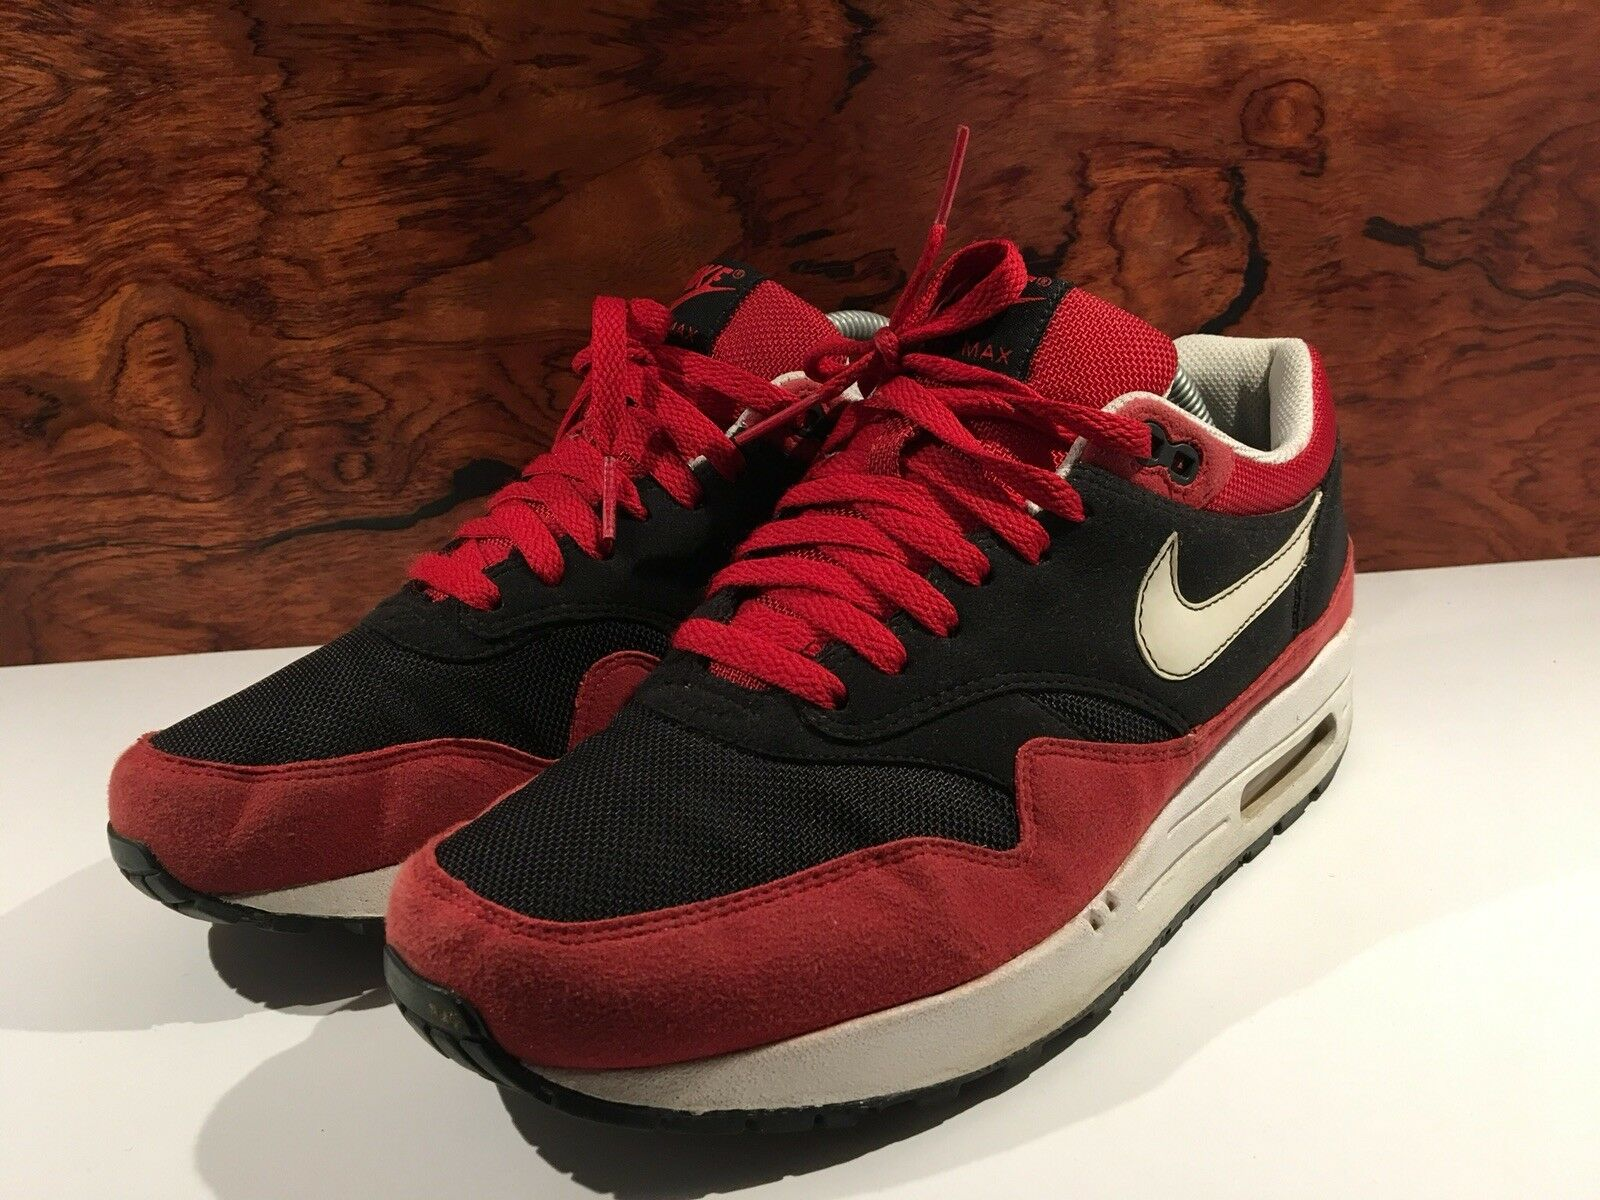 Nike Air max 1 og red qs Patta 87 US 8,5 42 v. 2008 hoa rot schwarz